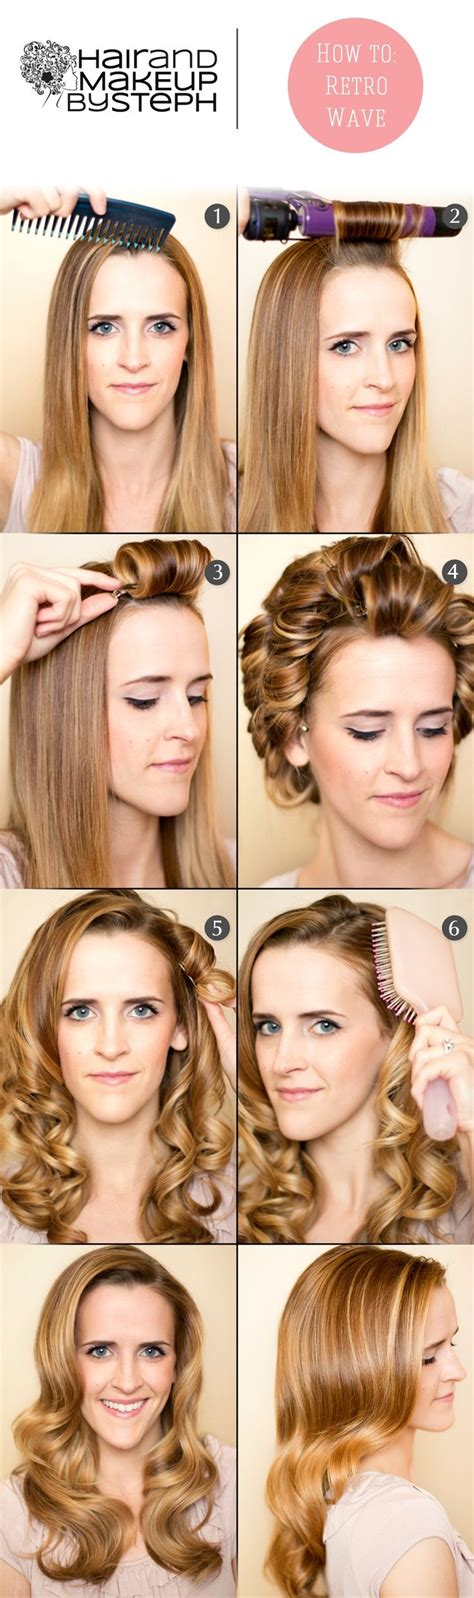 diy vintage big hairstyles 20 stylish retro wavy hairstyle tutorials and hair looks